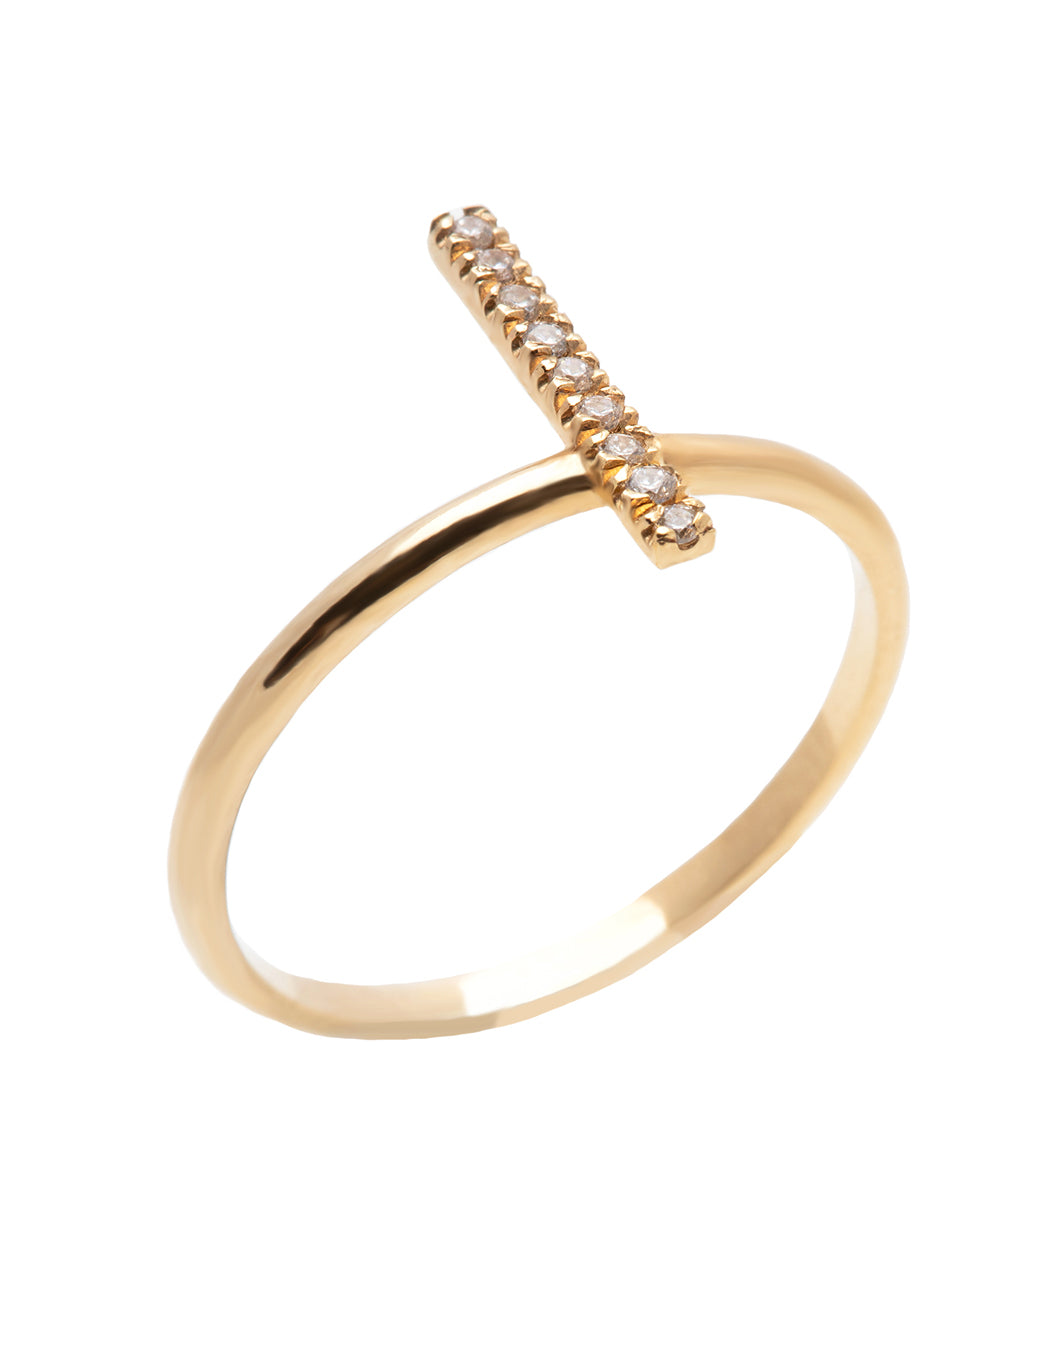 A dainty 14k yellow gold ring, with a vertical bar on top, set with nine tiny white diamonds.